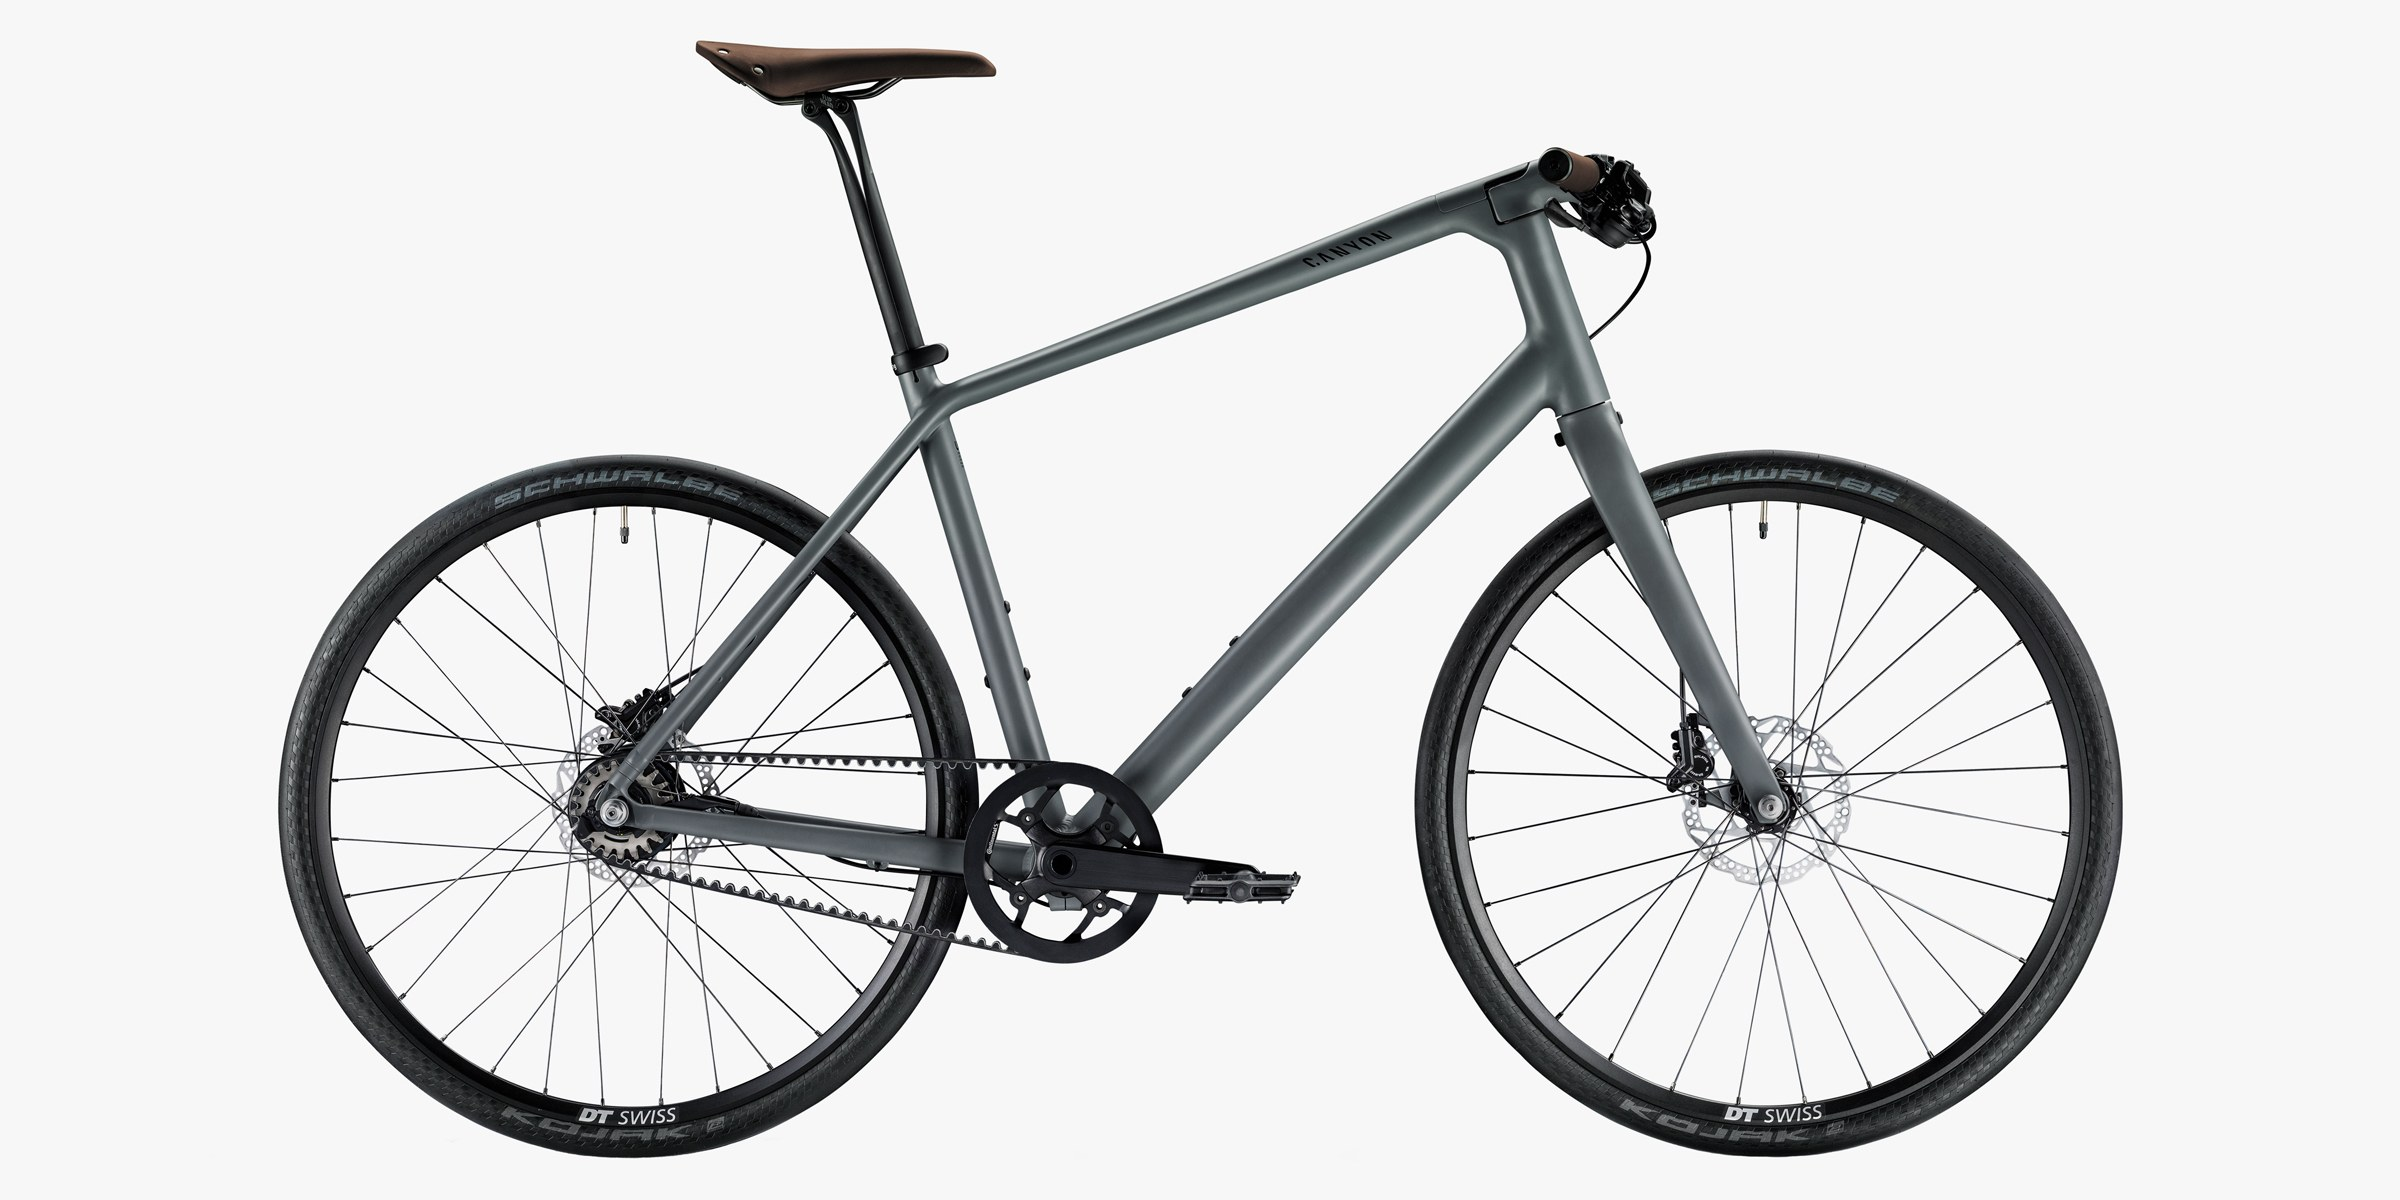 Canyon Urban 8.0 Review: A Smooth-Riding Commuter Bike | WIRED